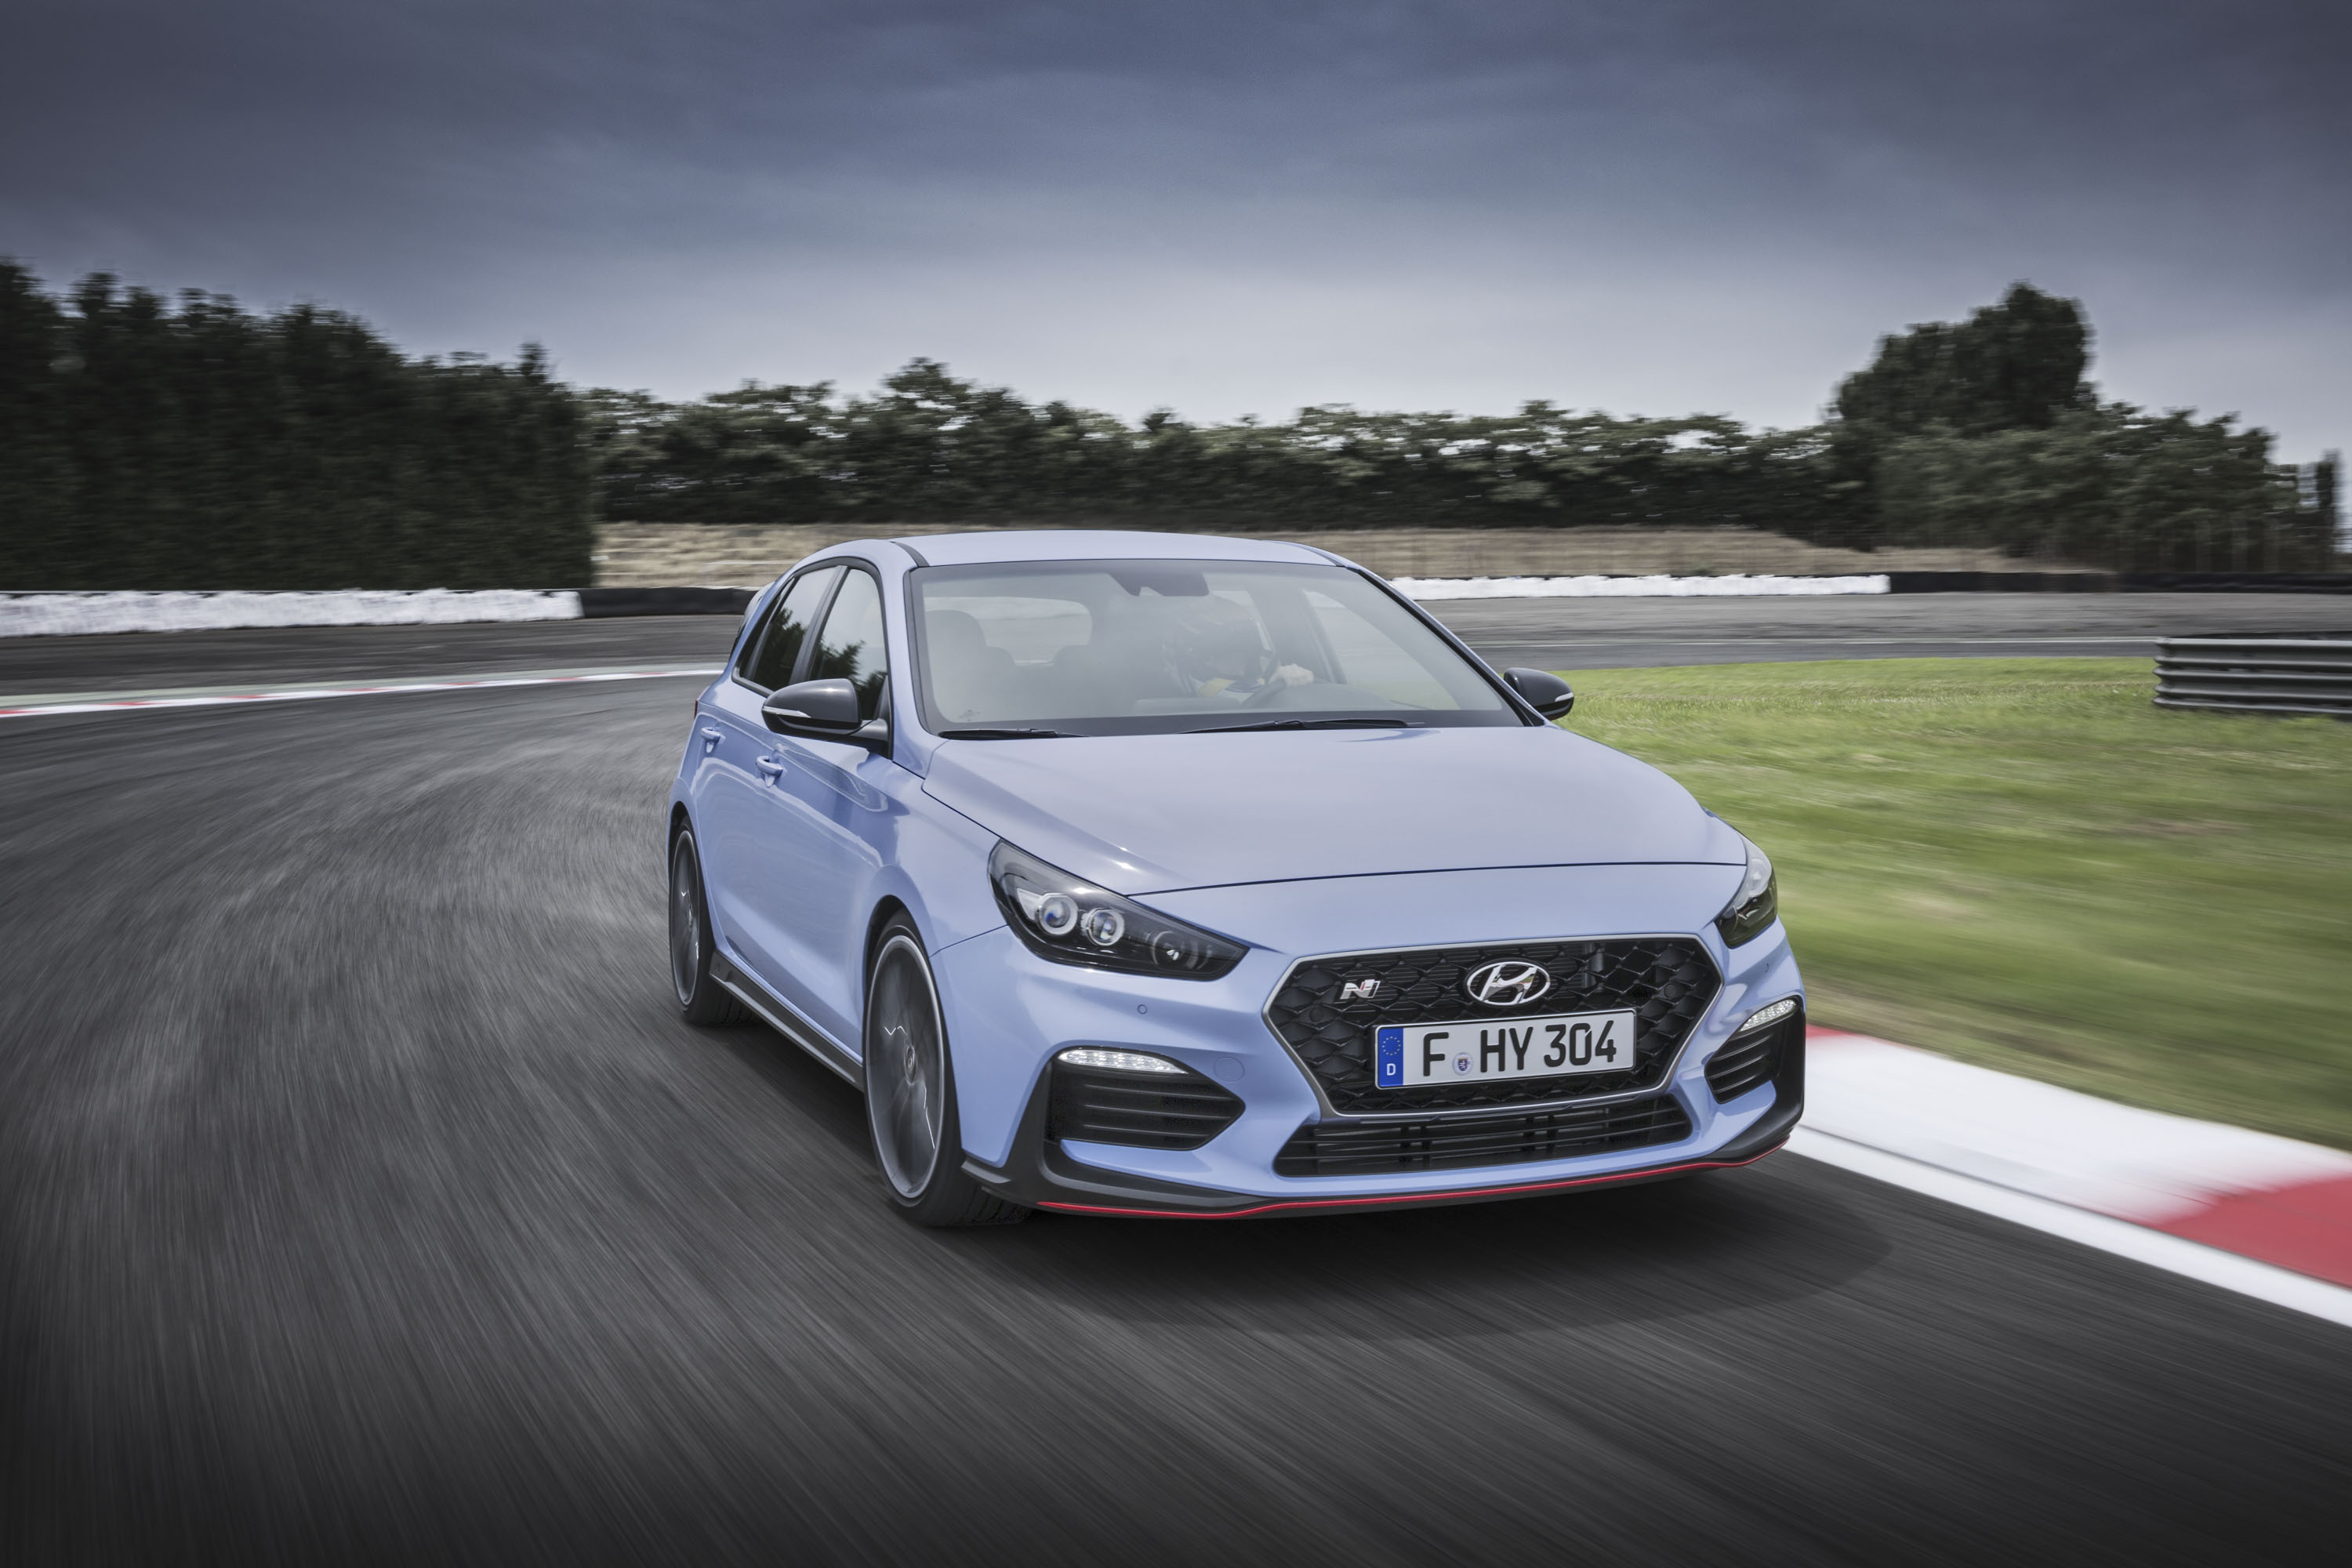 Hyundai N Has A Standalone Halo Car In The Works Could It Revive The Hnd 9 Or Passocorto Concept Top Speed